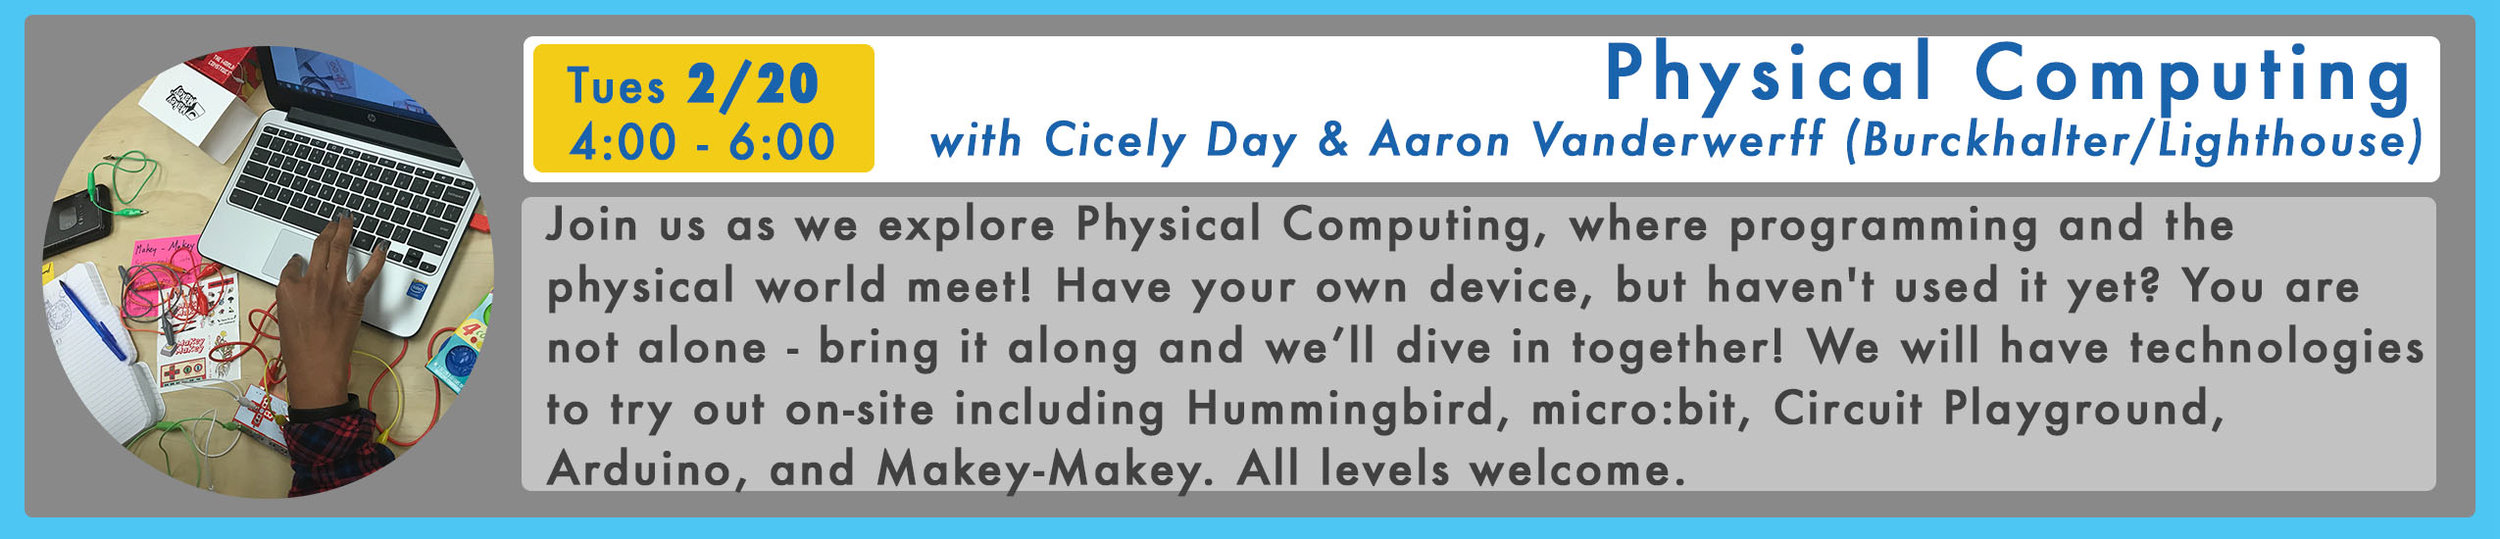 RSVP Here  for Physical Computing